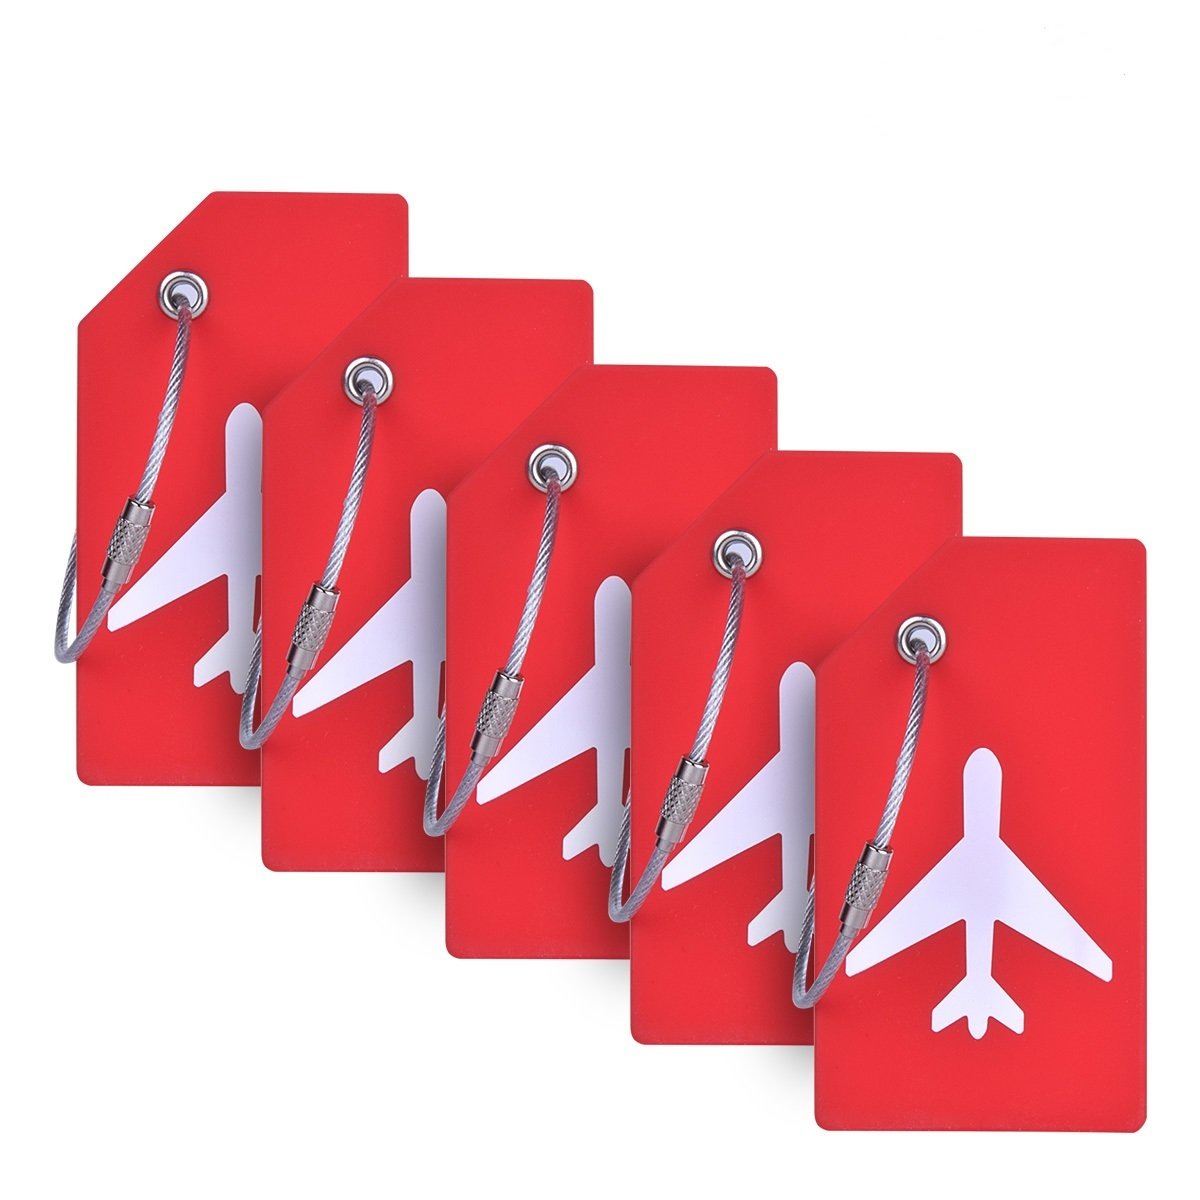 5PCS Silicon Luggage Tags Business Card Holder Travel ID Bag Tag Red Color By CPACC